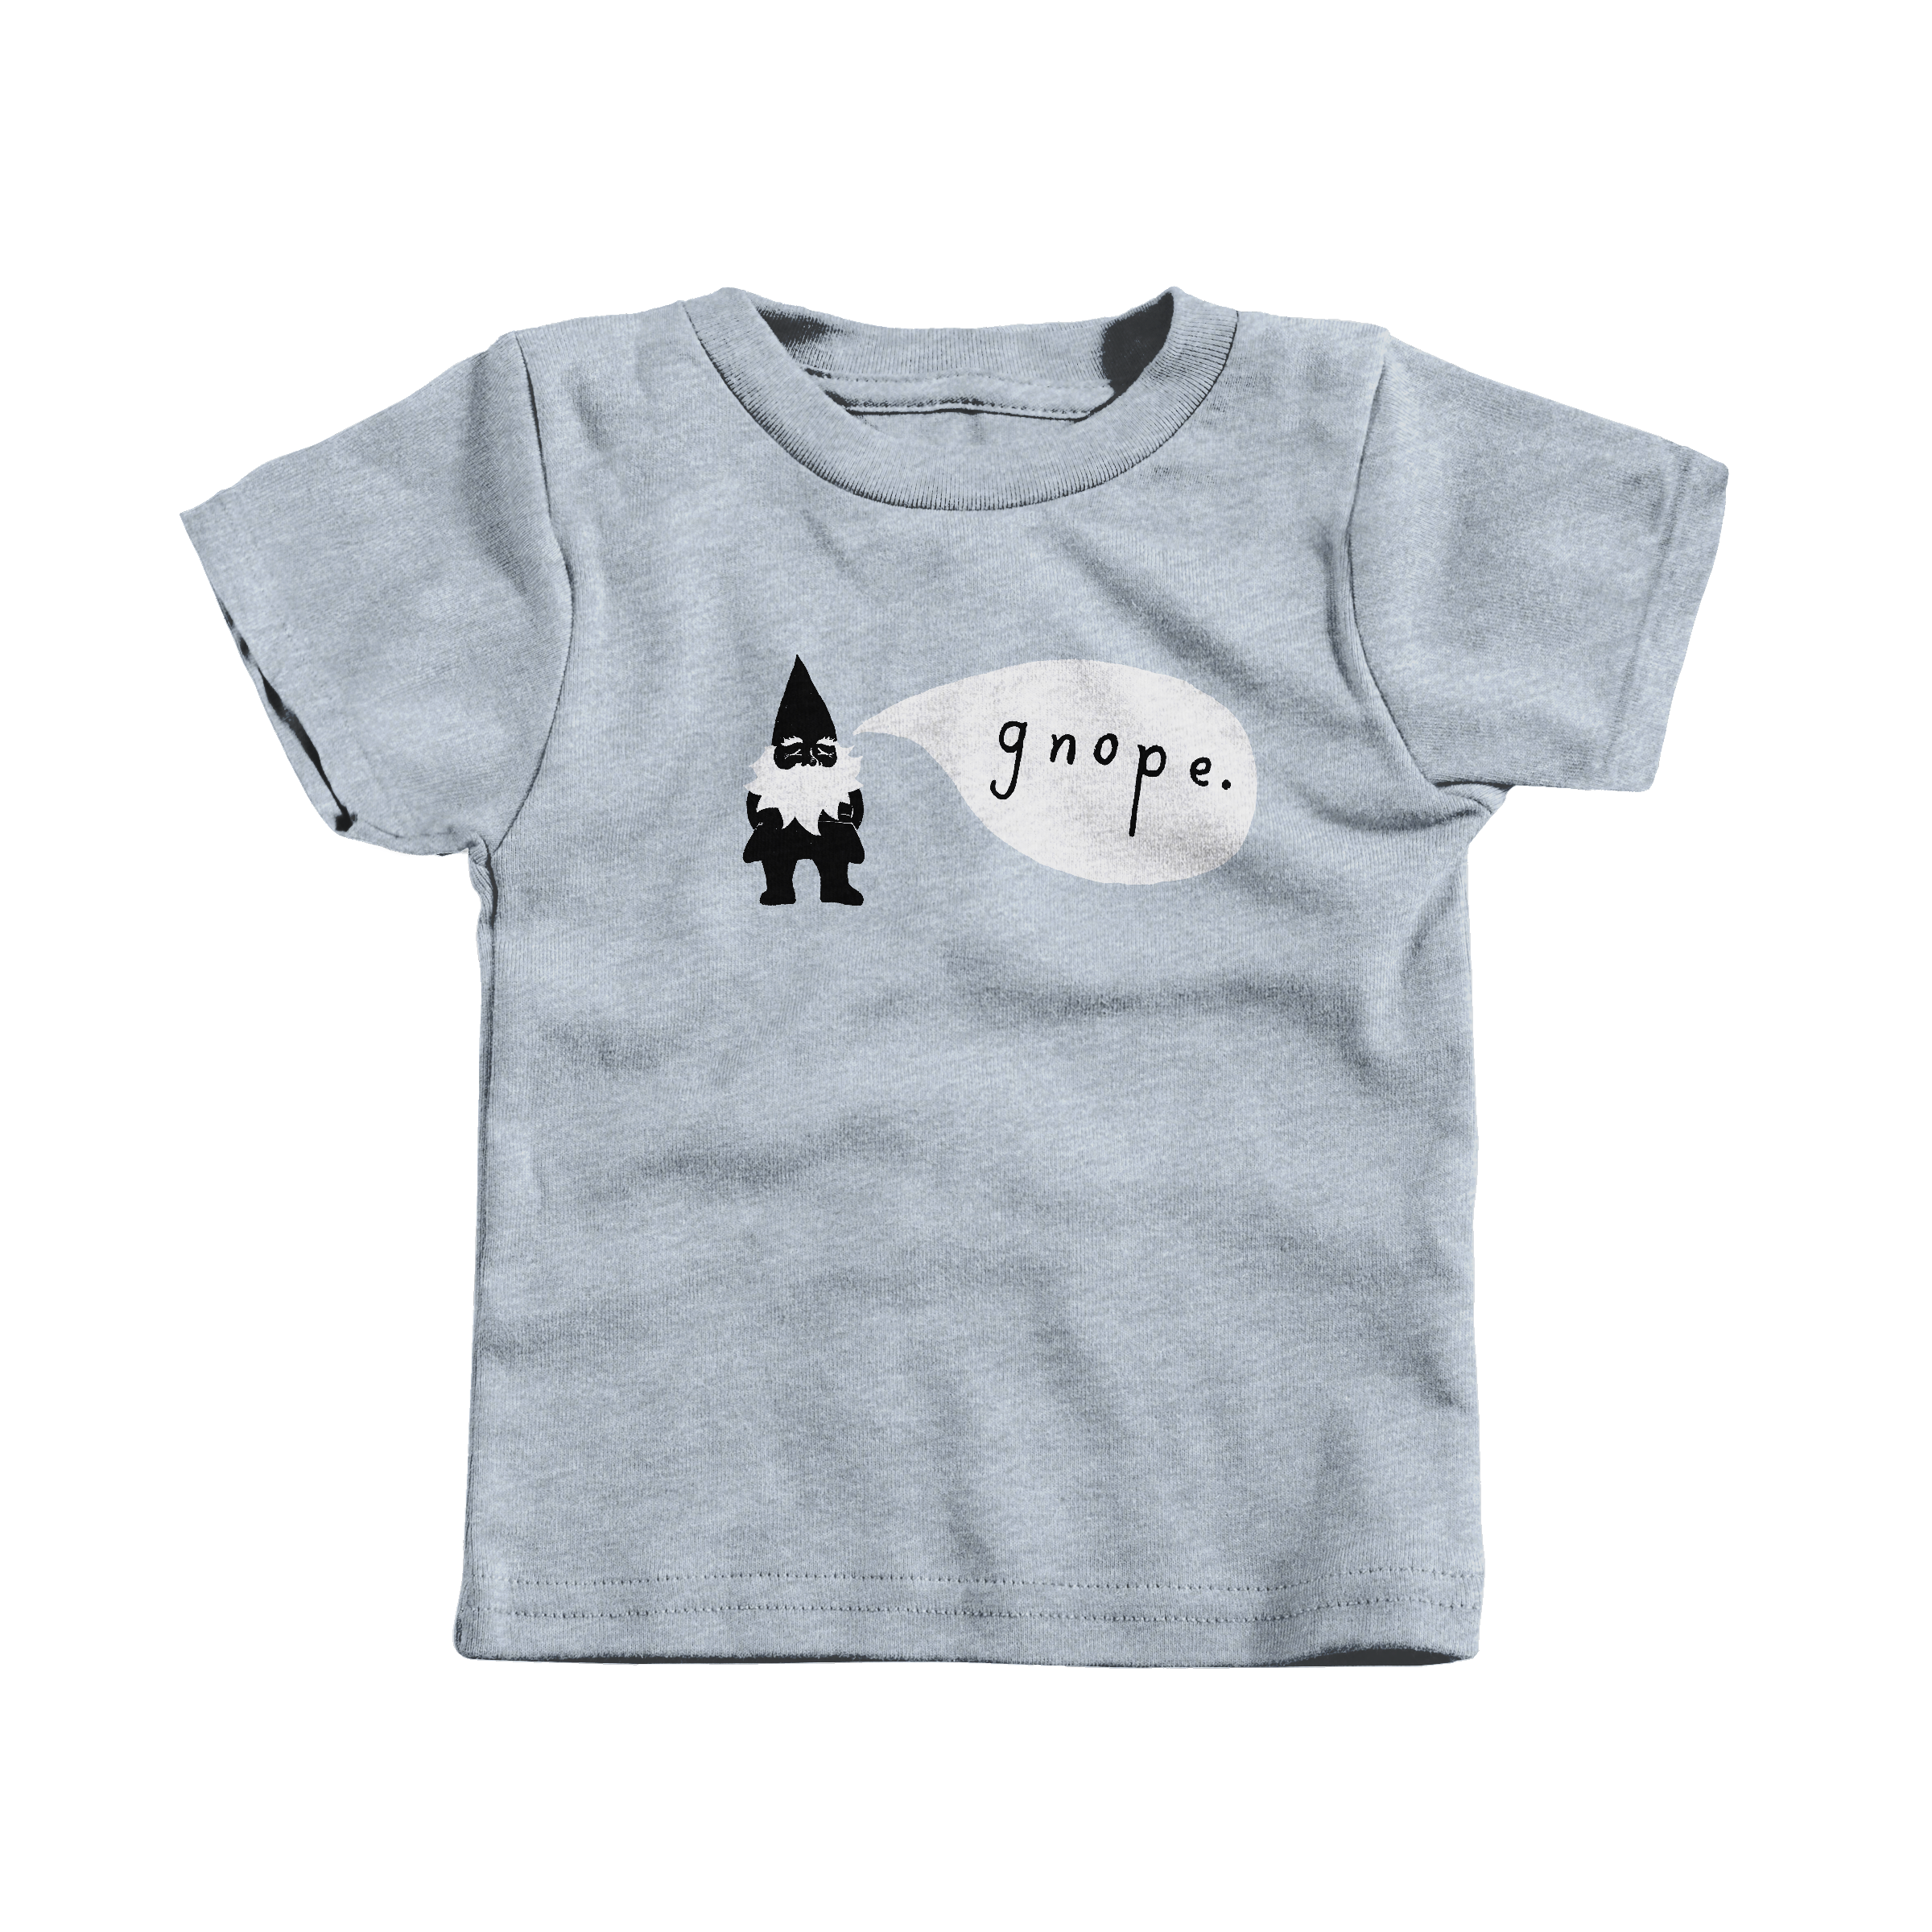 Gnope Heather Grey (T-Shirt)